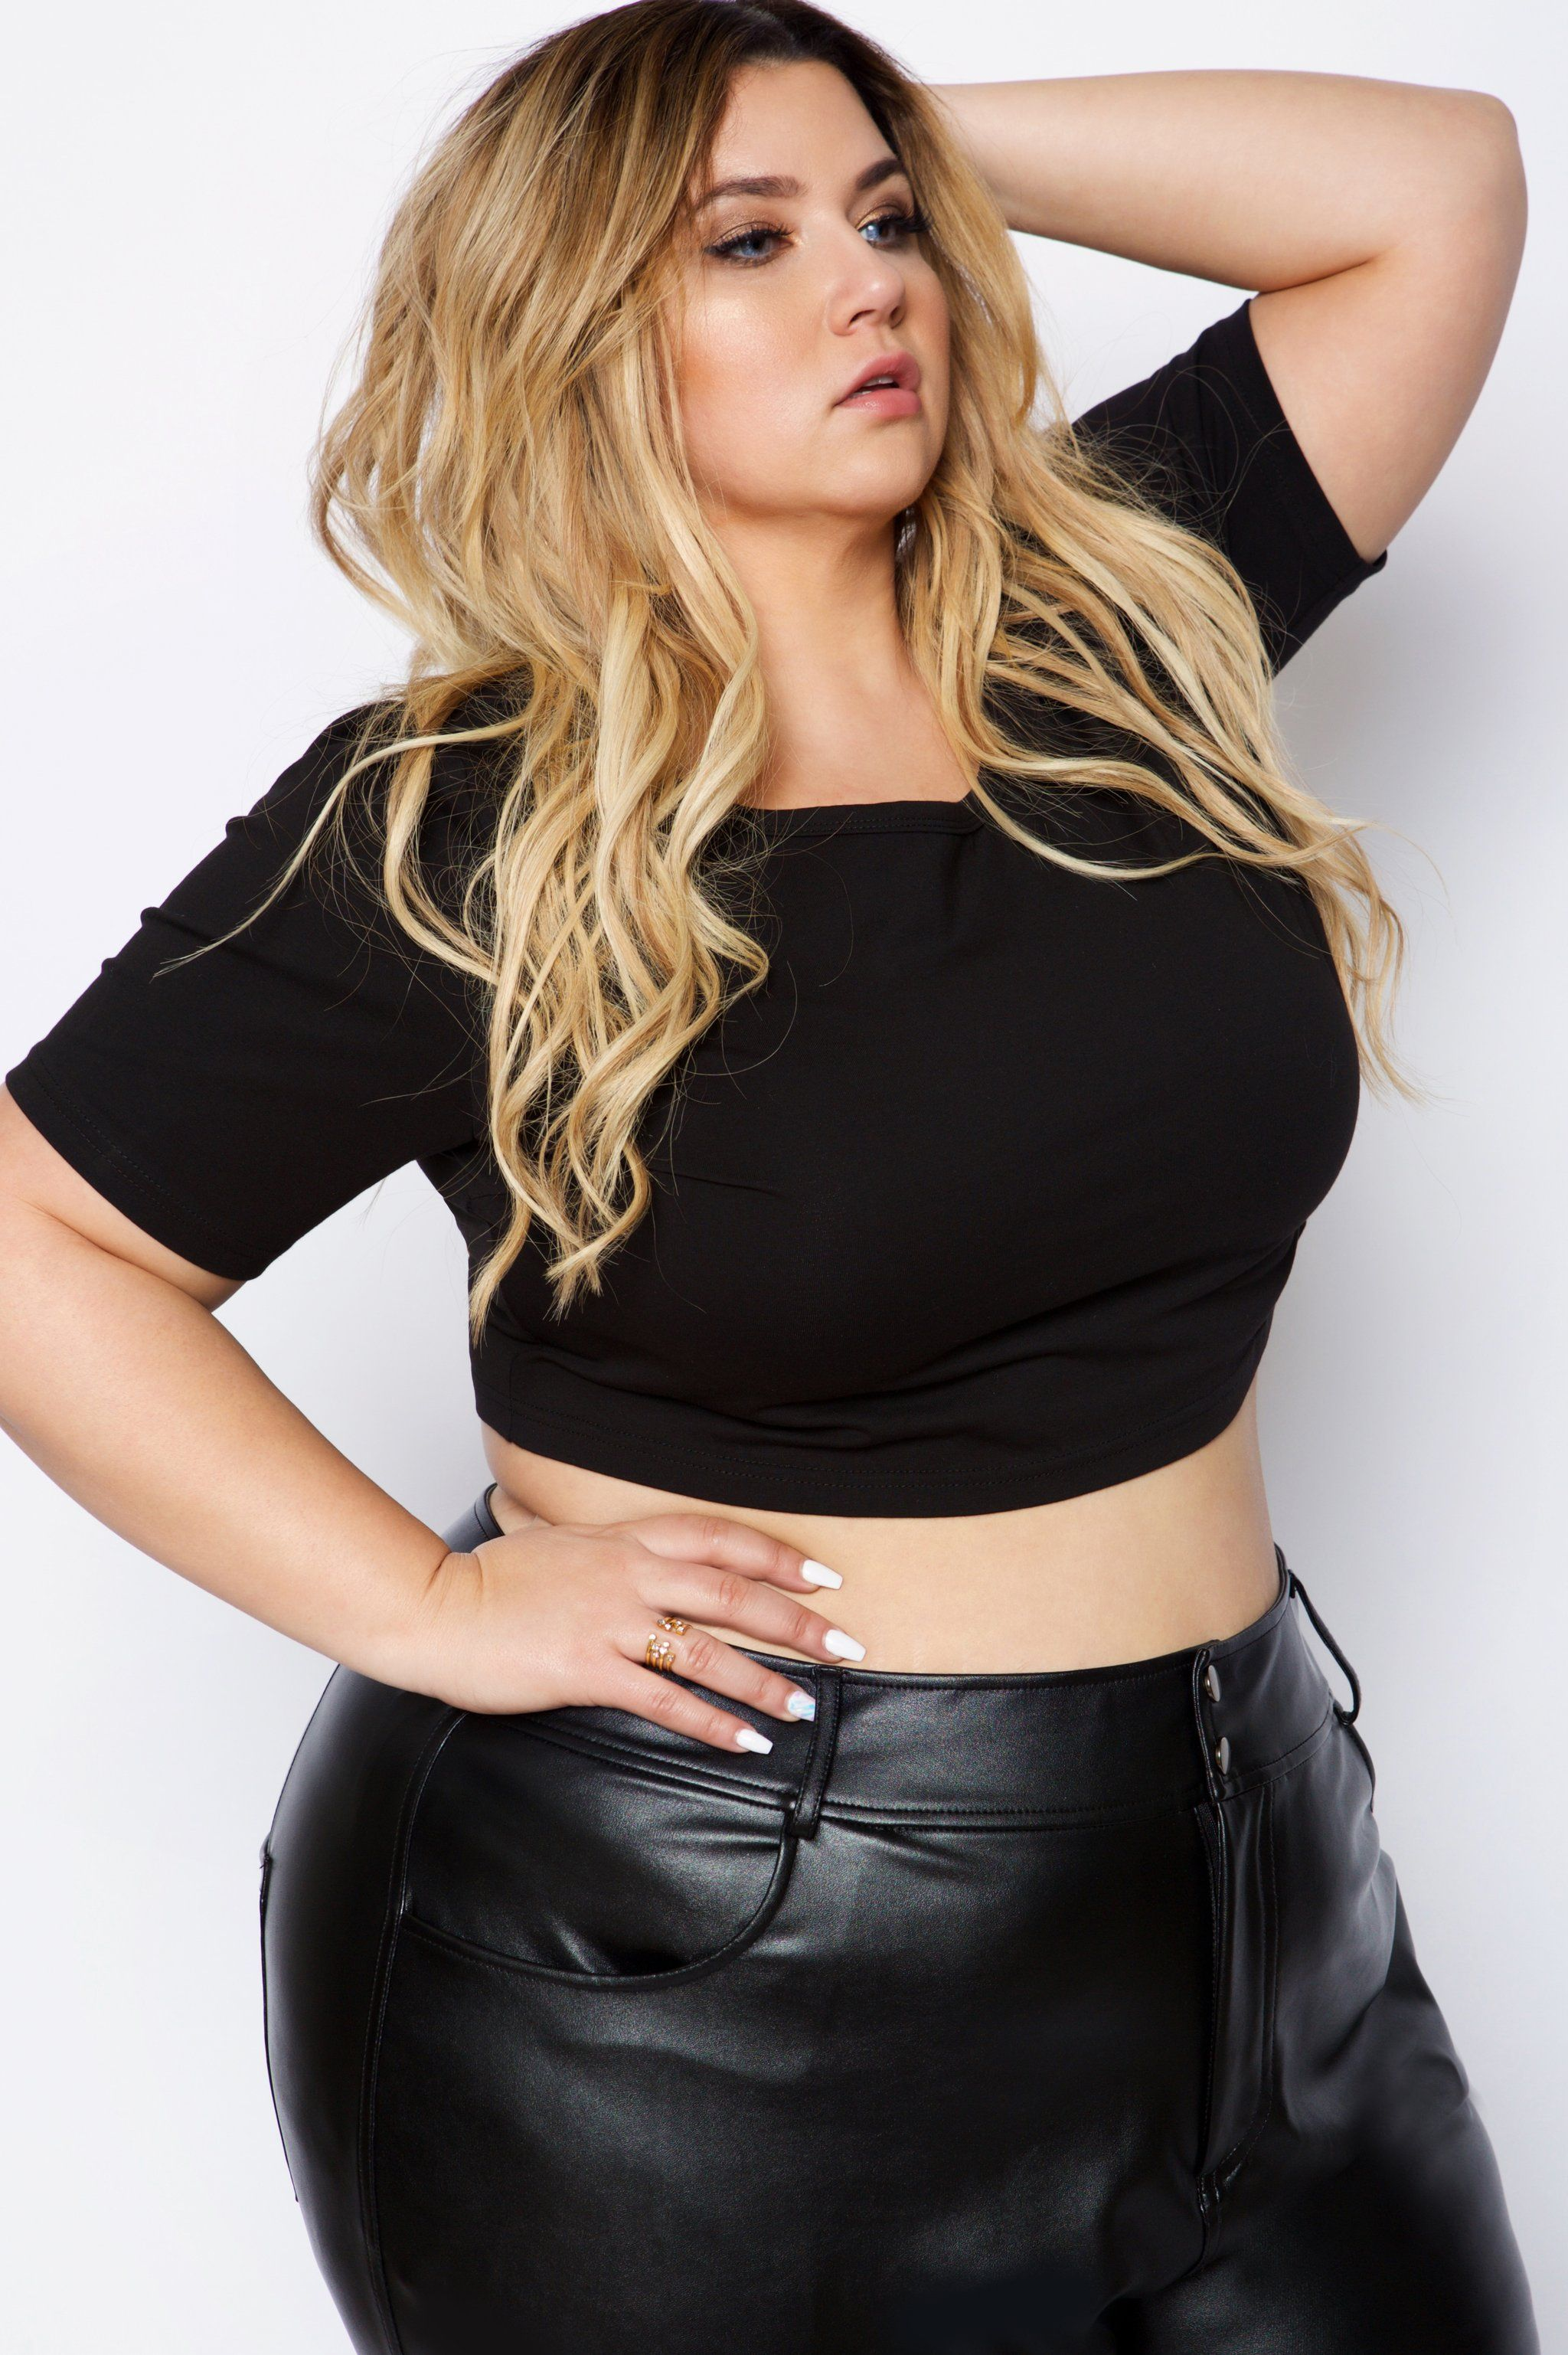 d16c7648ba034 Crystal Coons Plus Size Crop Tops